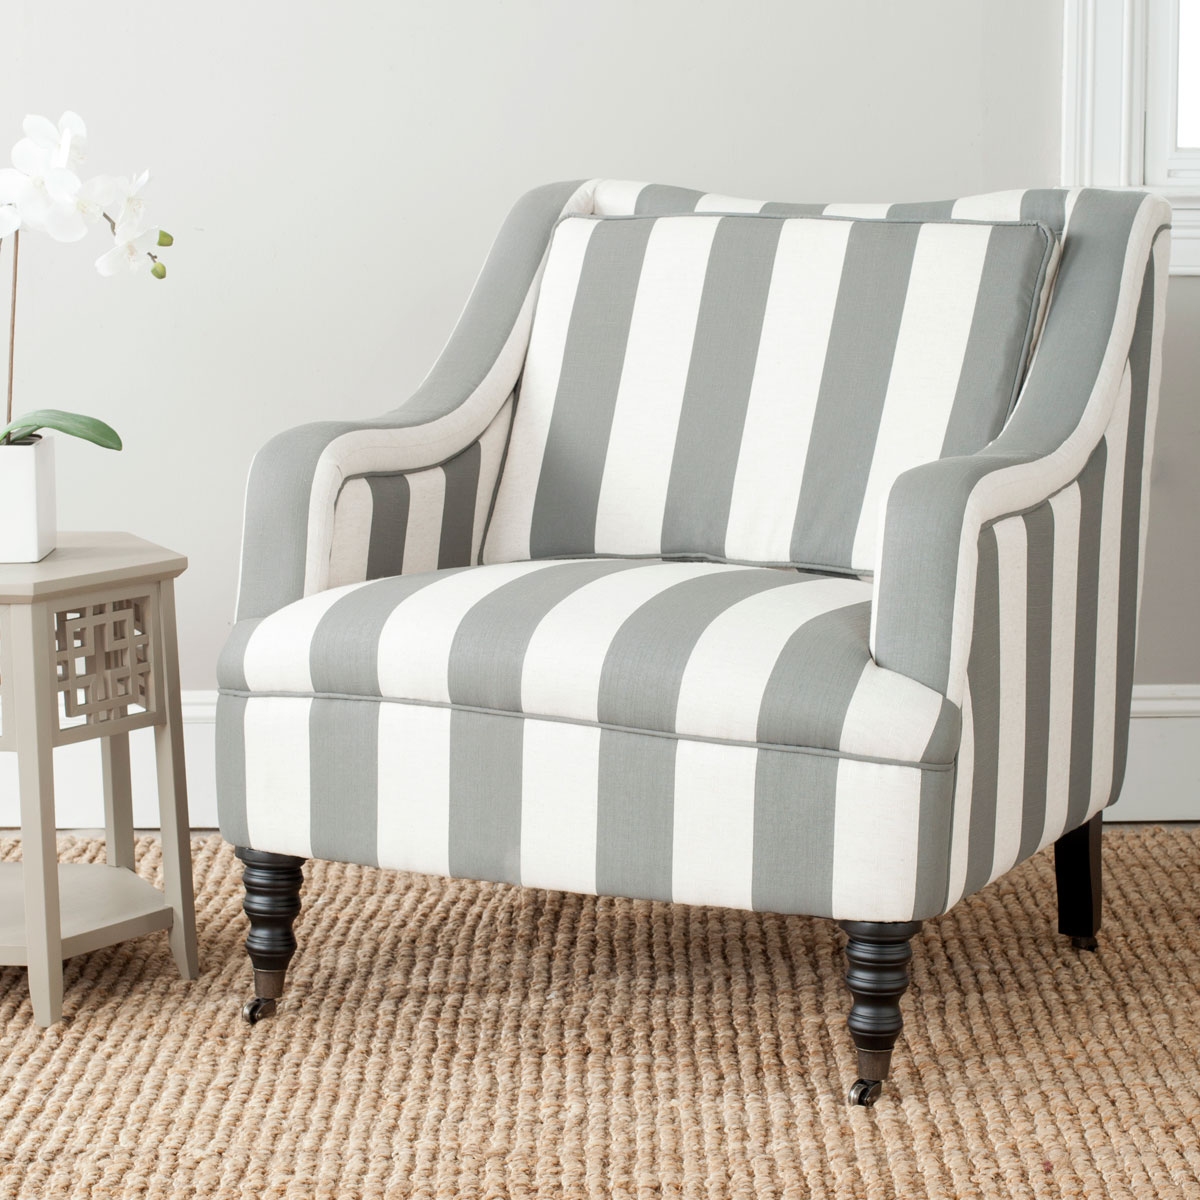 MCR4652A Accent Chairs - Furniture by Safavieh